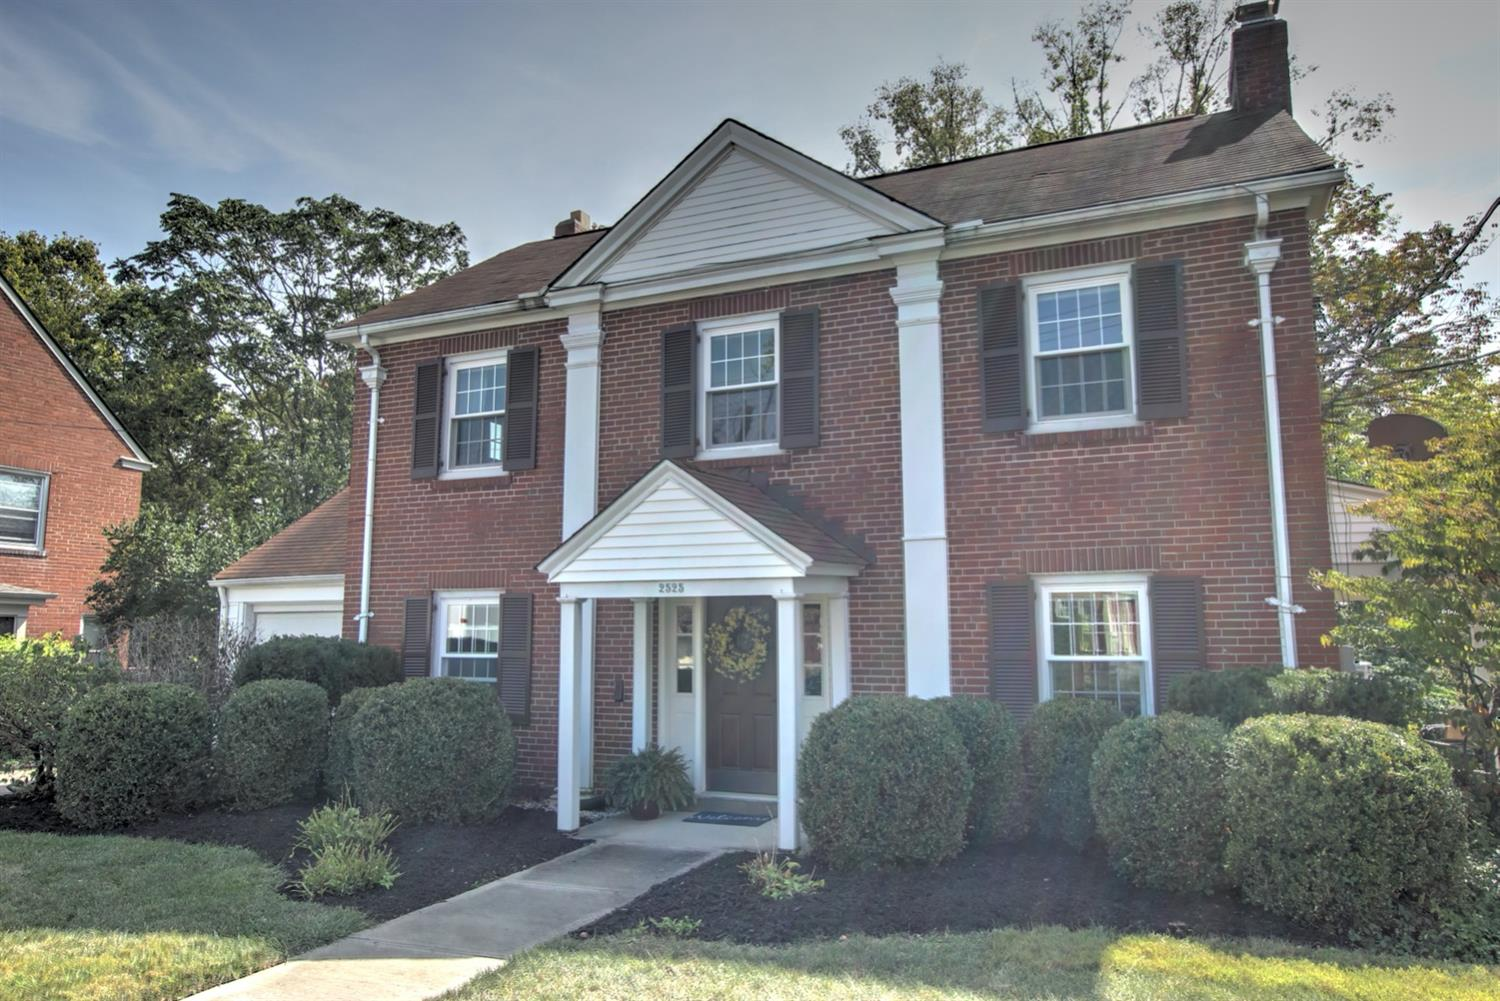 Property for sale at 2525 Moundview Drive, Norwood,  Ohio 45212